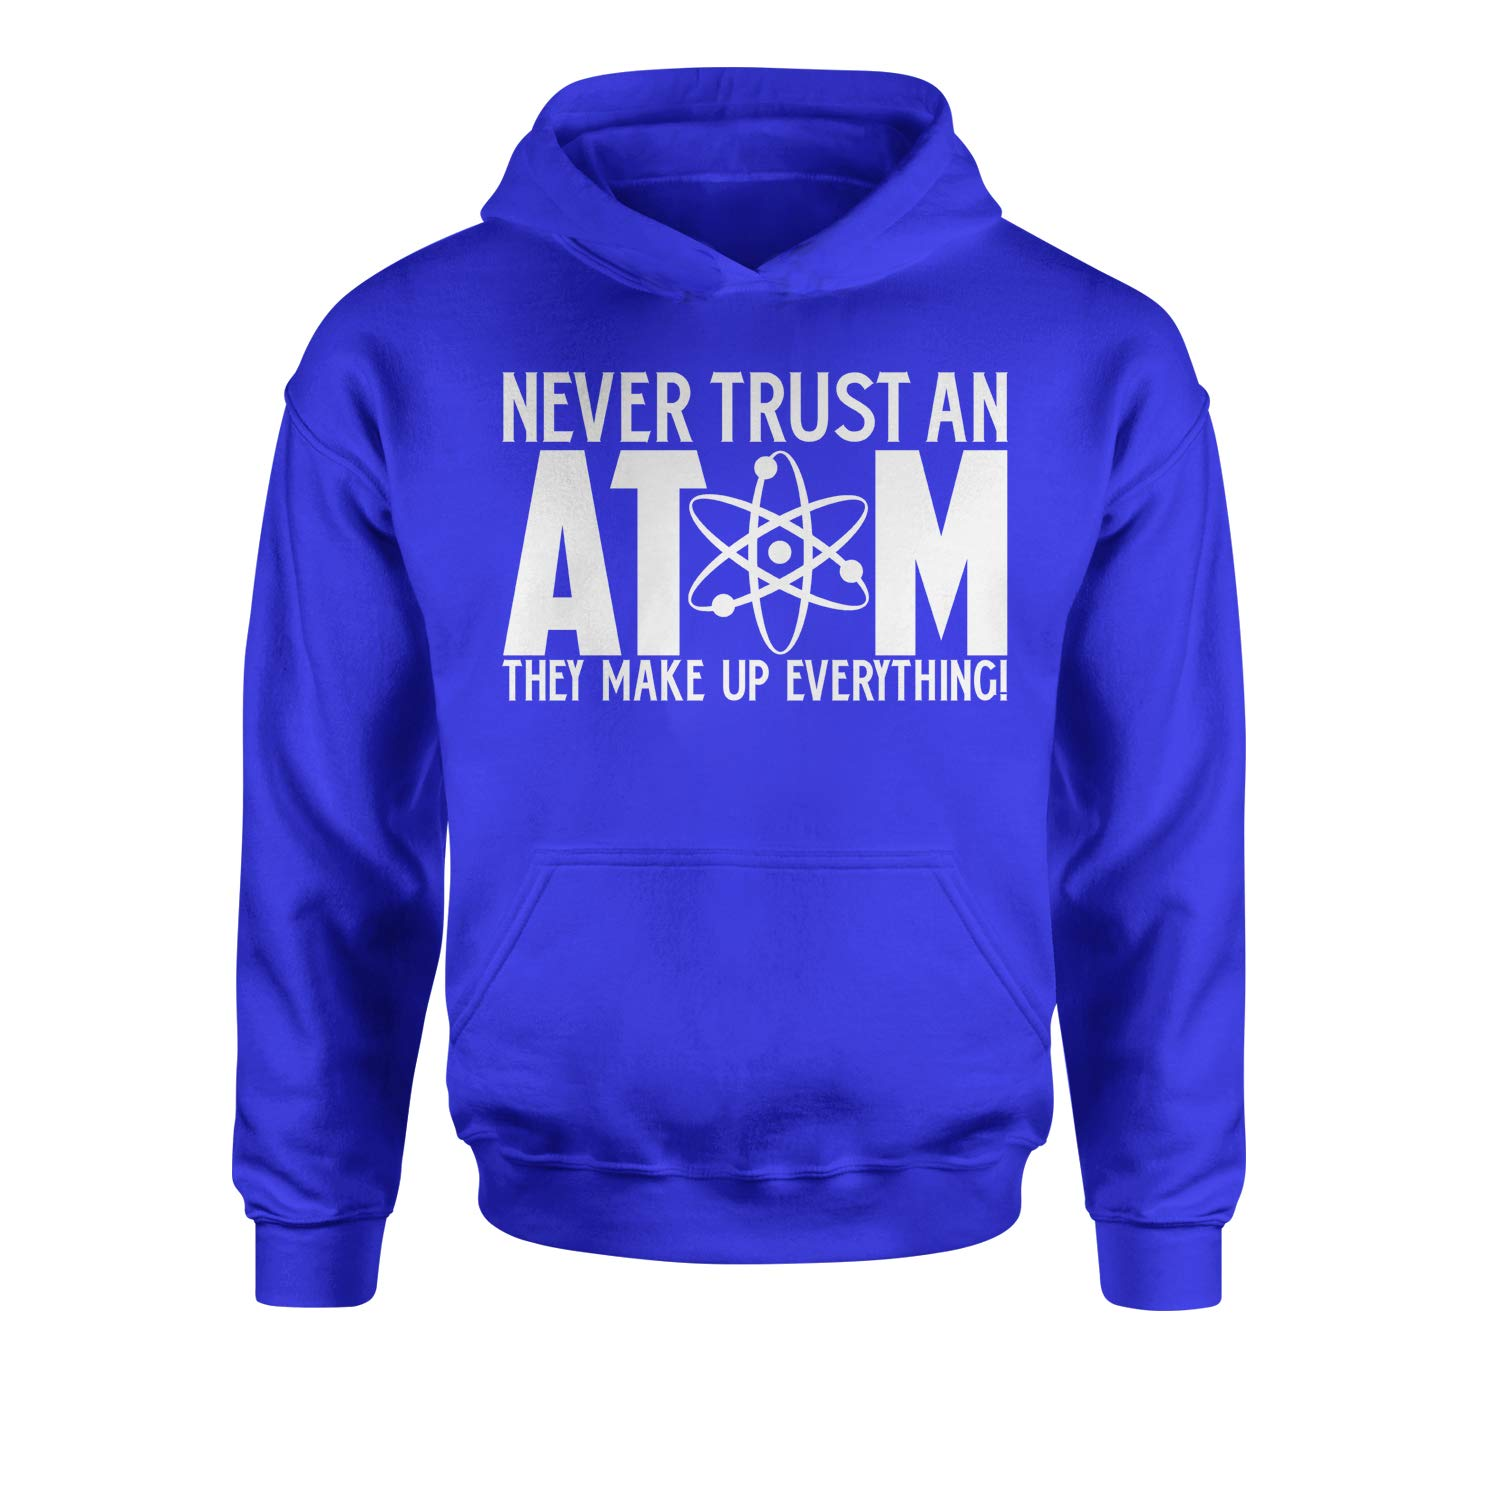 Expression Tees Never Trust an Atom They Make Up Everything Youth-Sized Hoodie